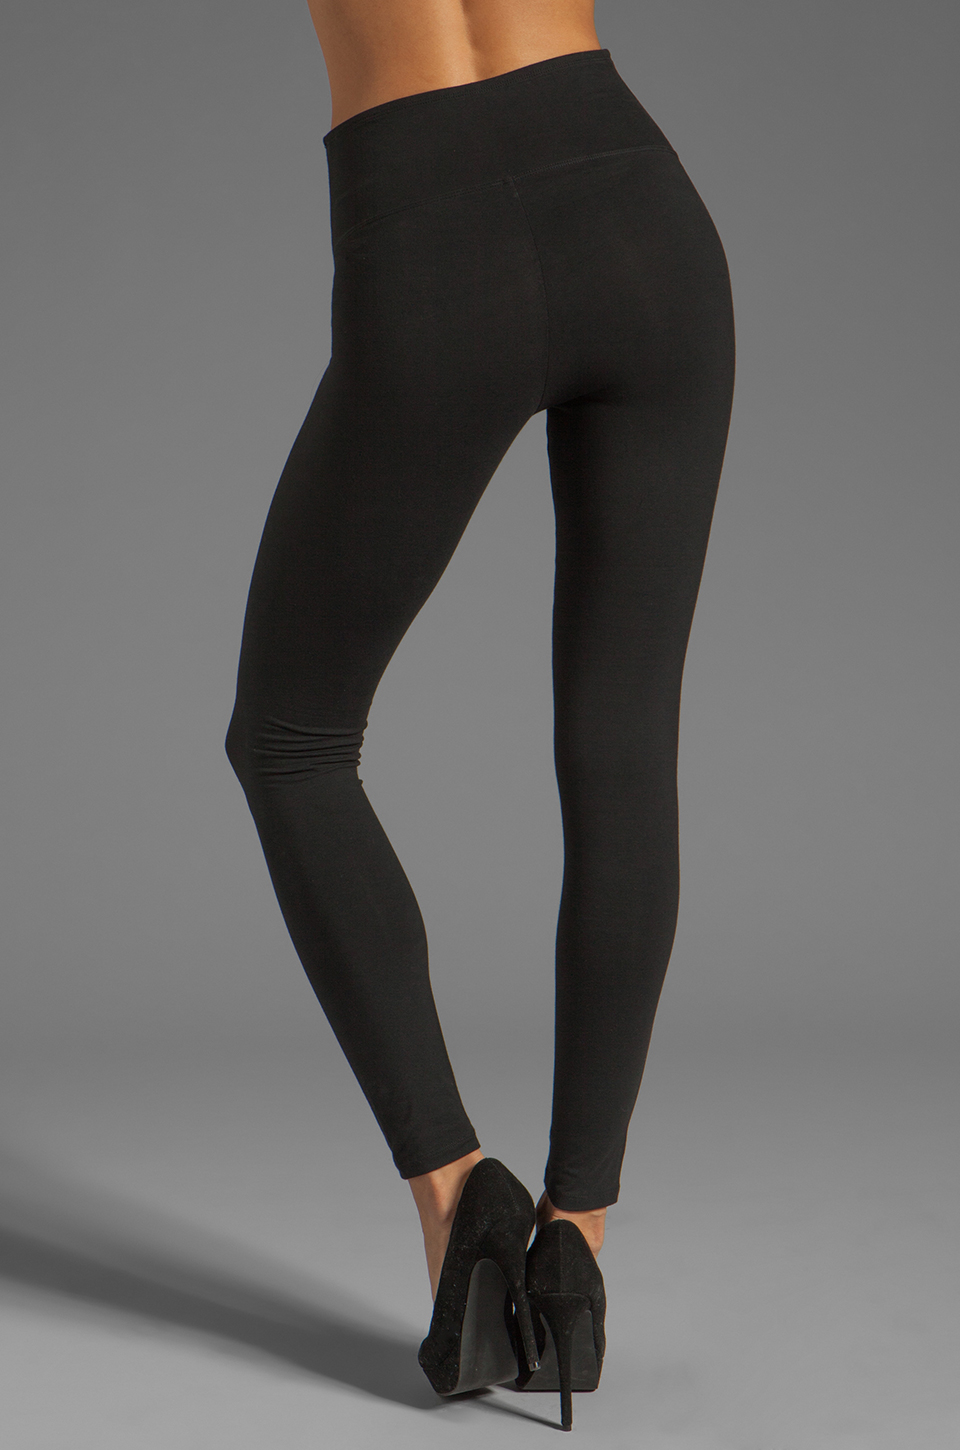 Yummie by Heather Thomson Breathe & Stretch Milan Legging in Black